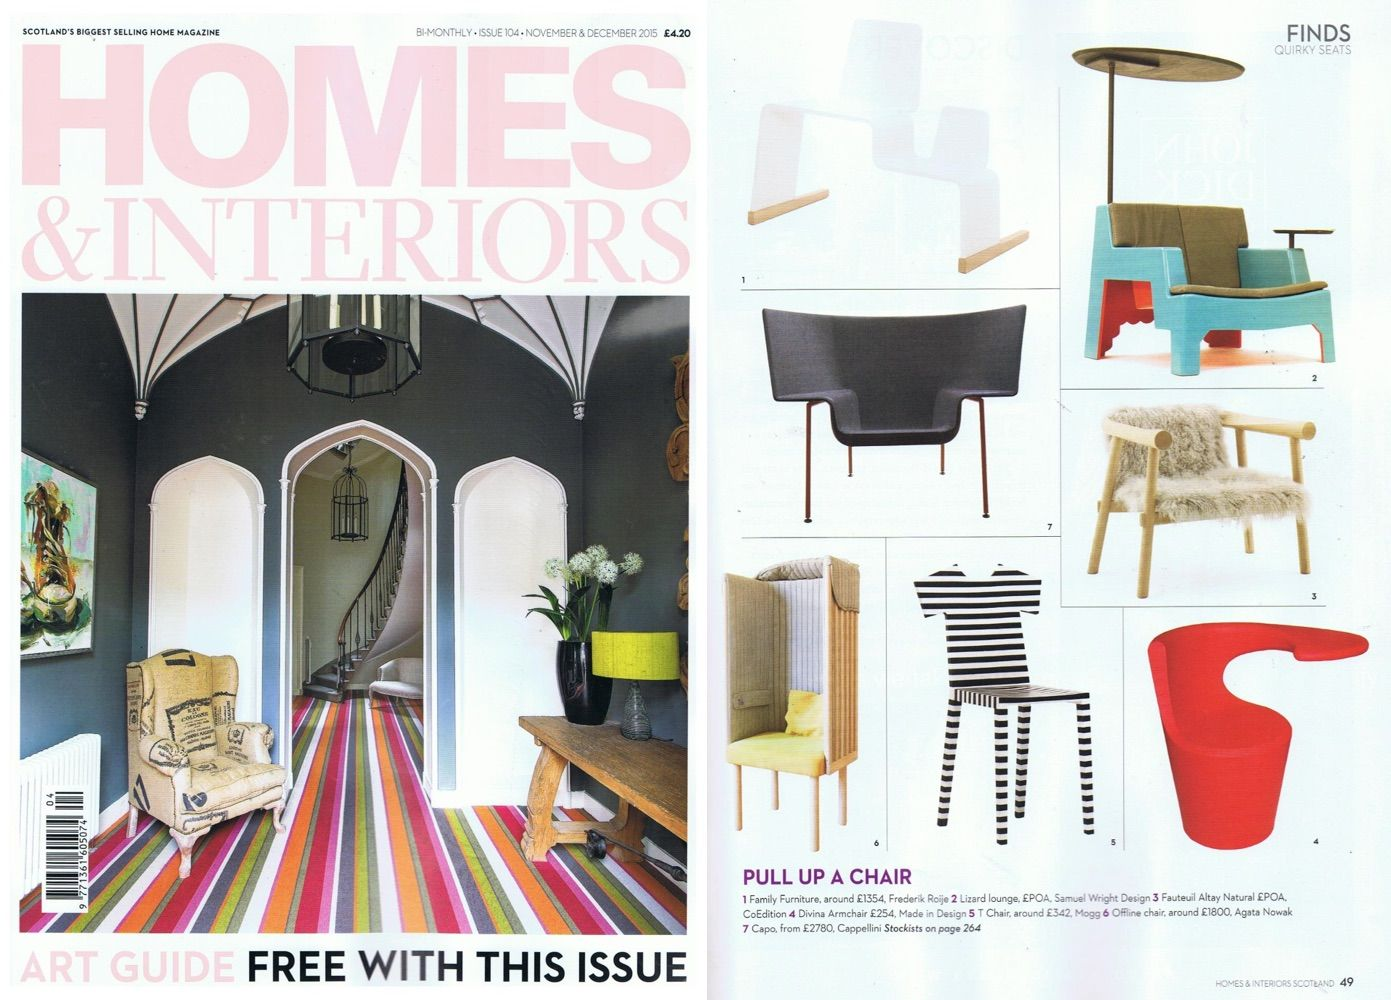 House interiors the  chair by mogg design annebet philips has been featured on homes also rh in pinterest